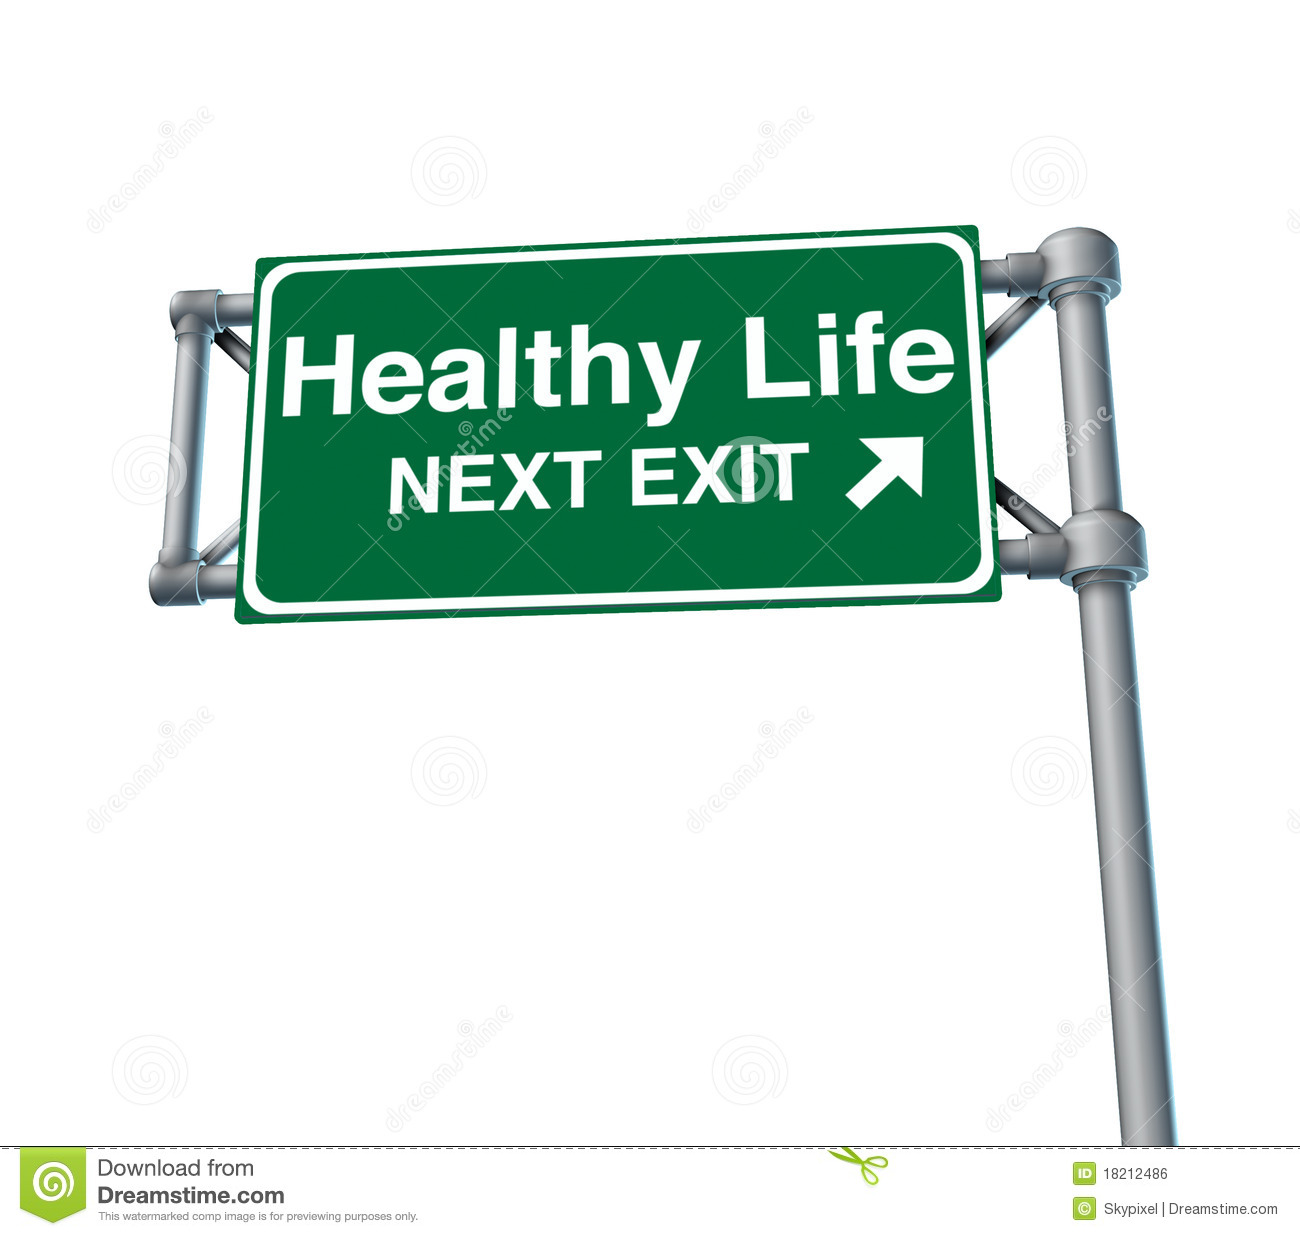 Highway Exit Sign Template Healthy life Freeway Exit Sign